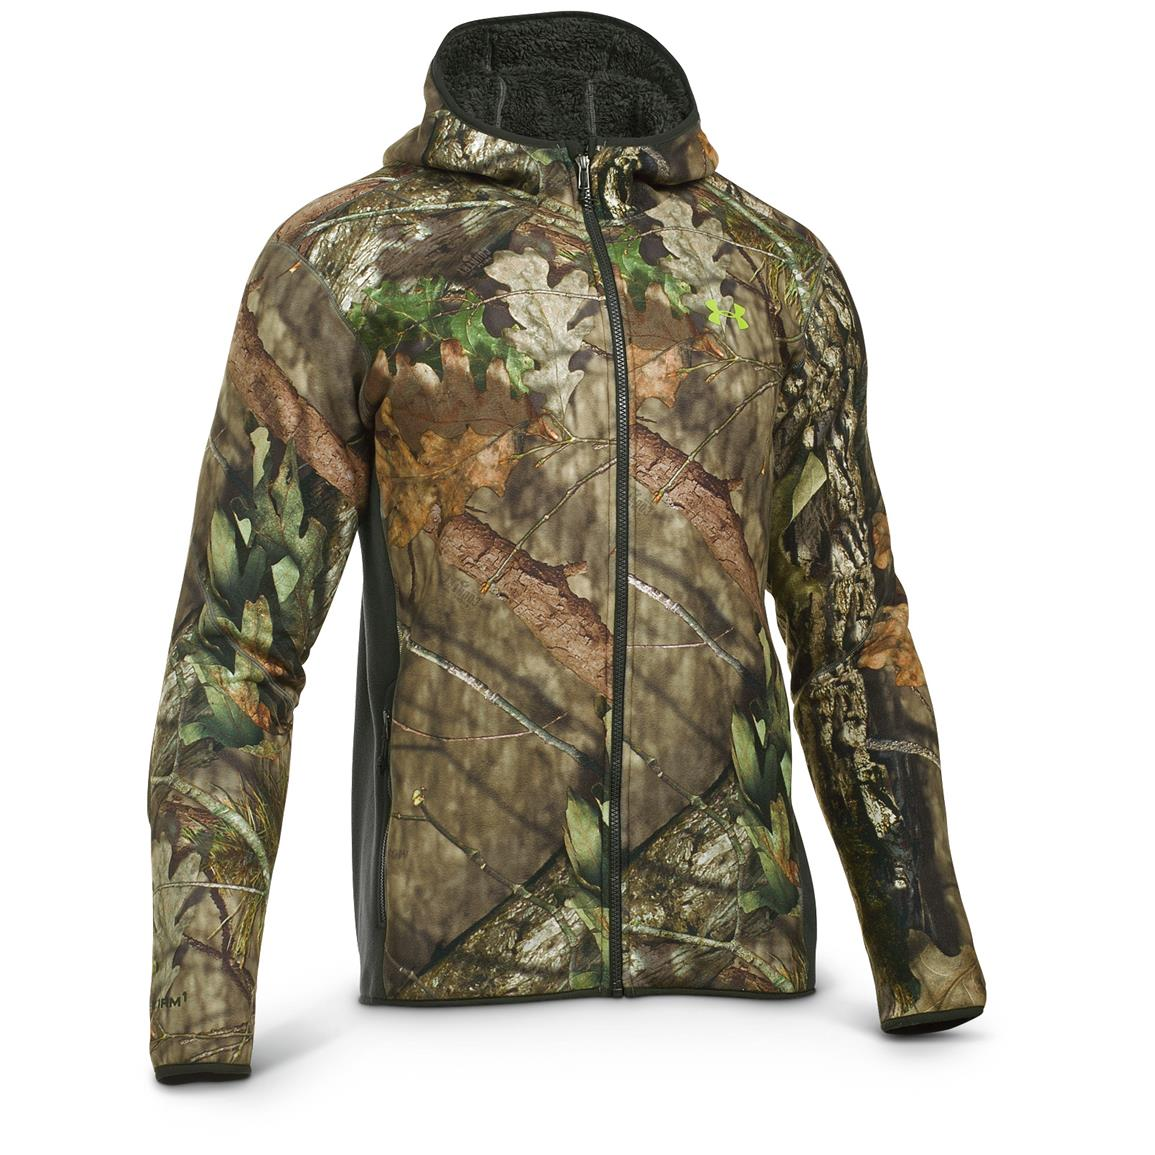 Under Armour Men's Stealth Hoodie, Mossy Oak Break-Up Country